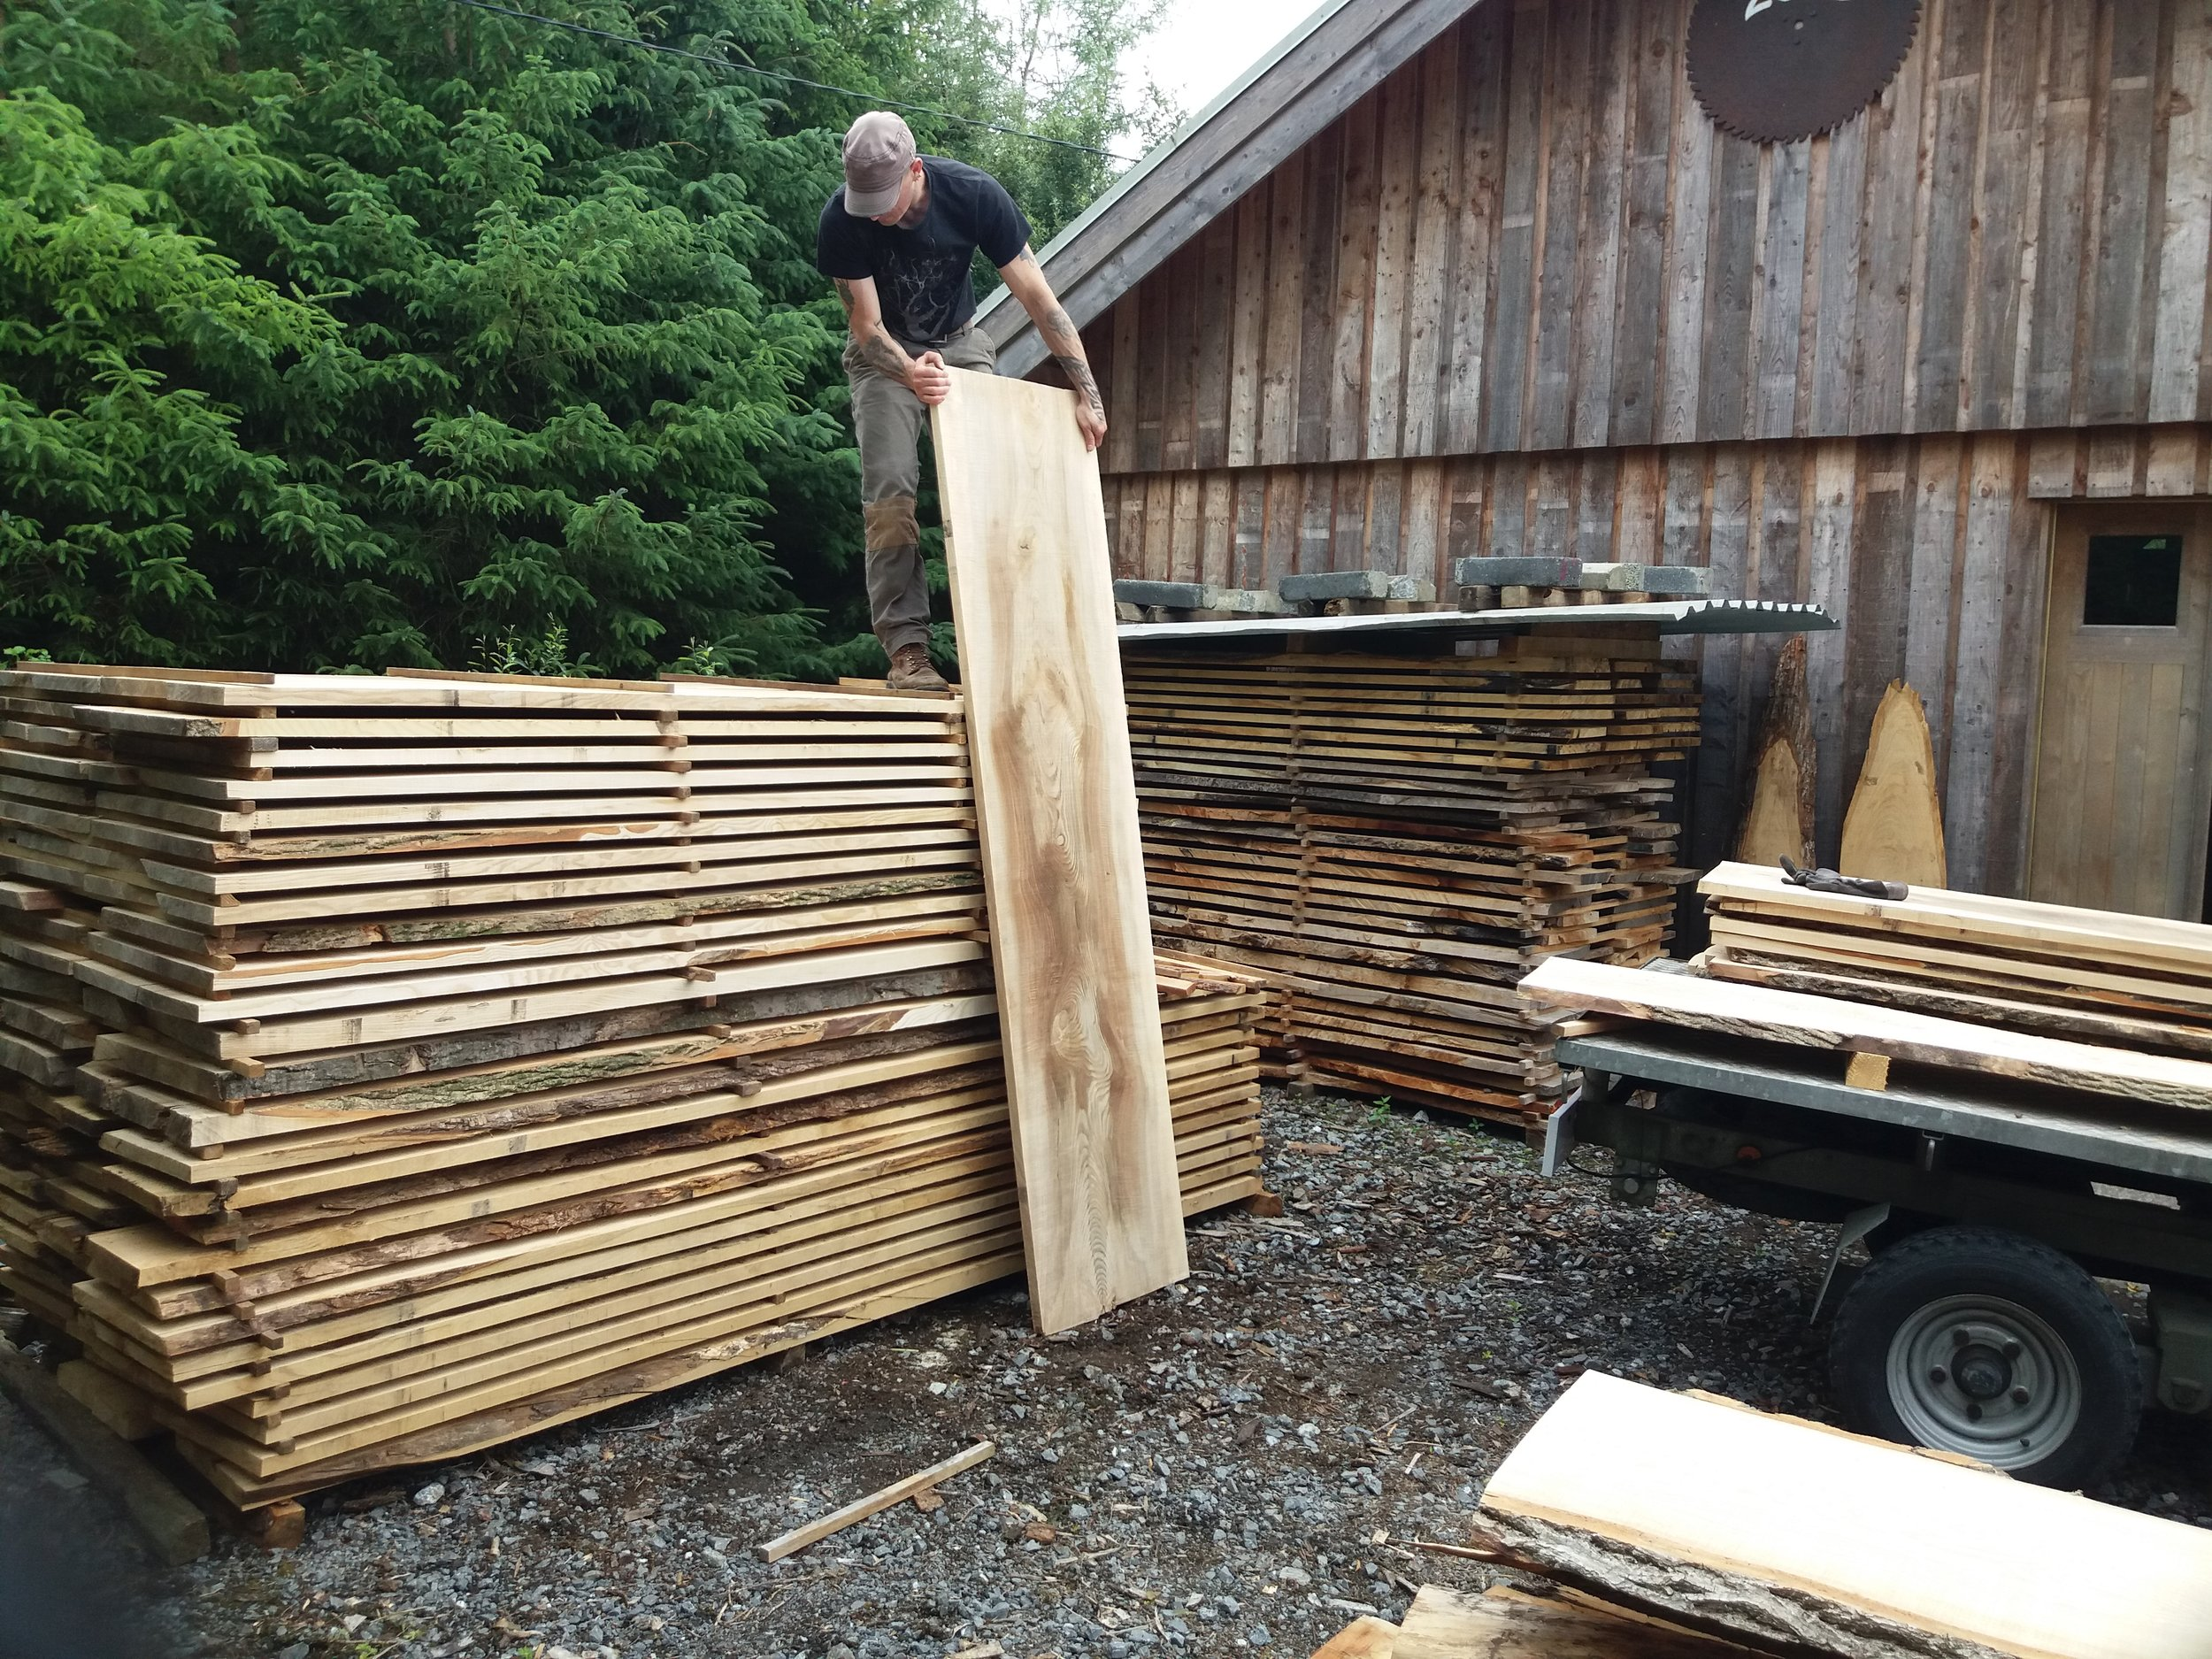 Air drying the timber outside for at least two summers.